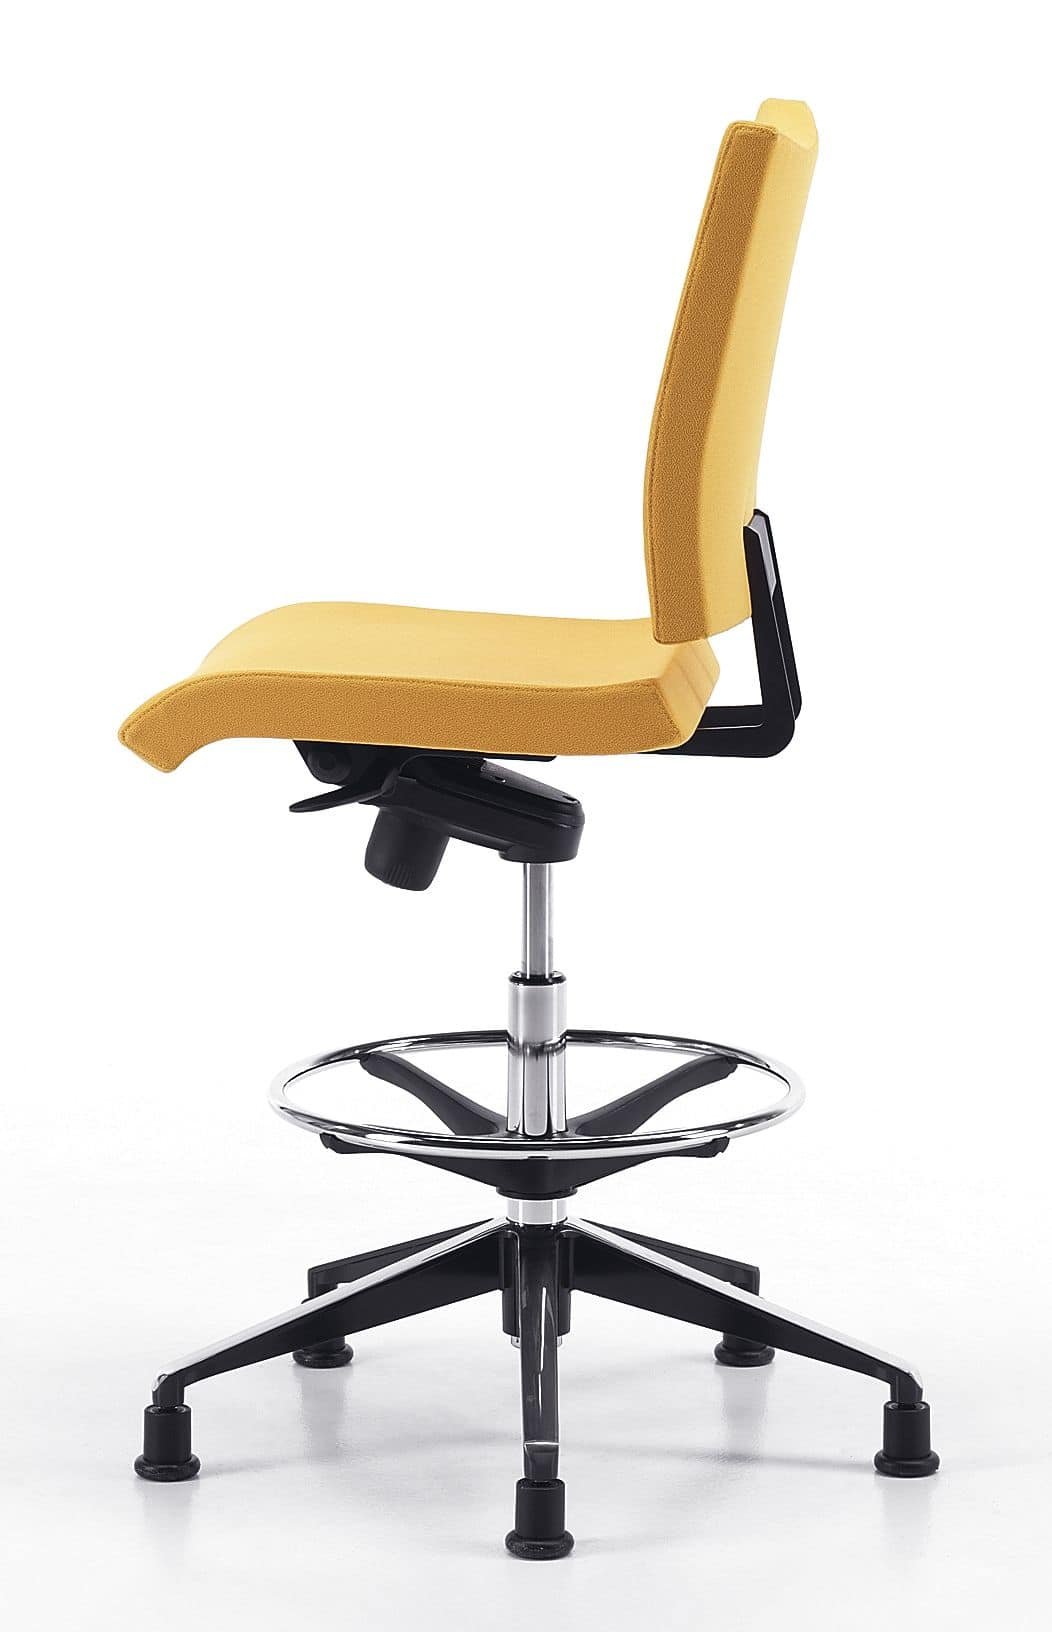 AVIAMID 3498, Professional office stool, with tilt mechanism